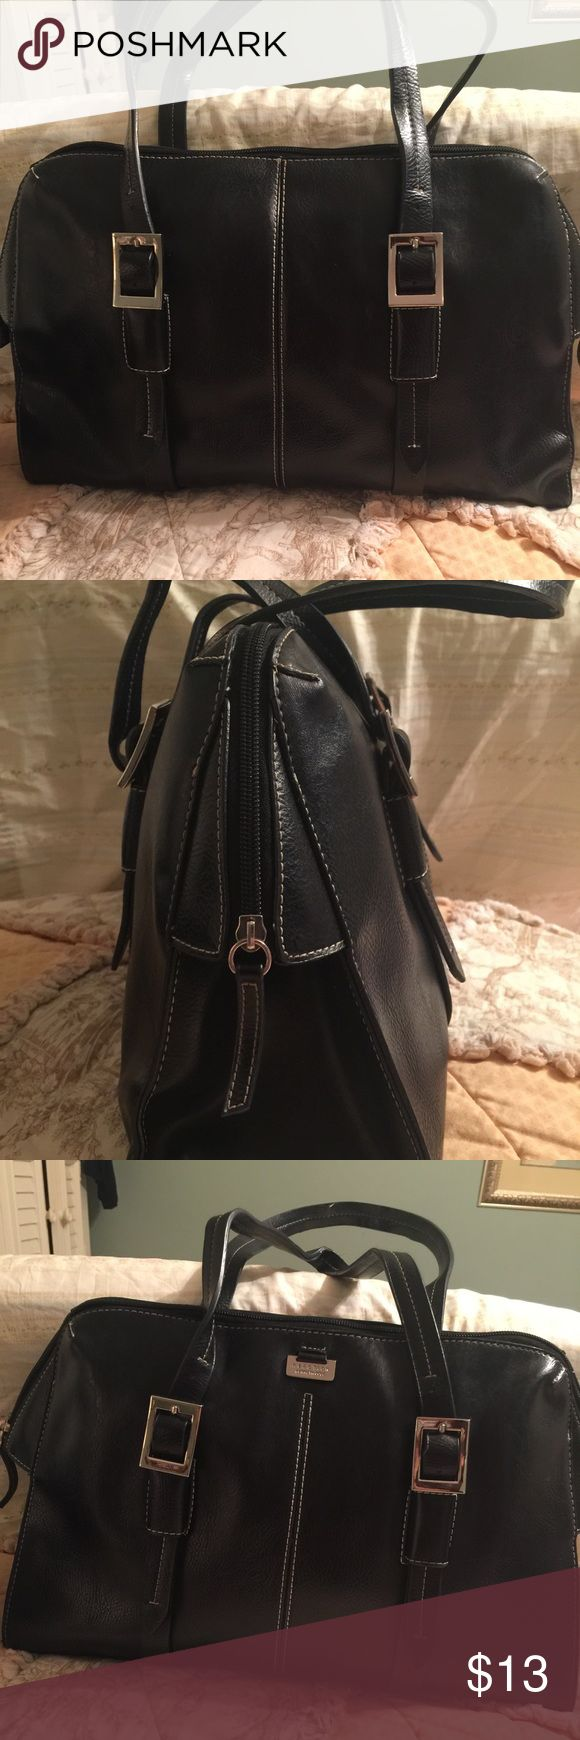 Kenneth Cole Nice Kenneth Cole reaction purse. Black and in good Shape. Handles have an area that is coming apart slightly.Clean inside. Kenneth Cole Reaction Bags Shoulder Bags